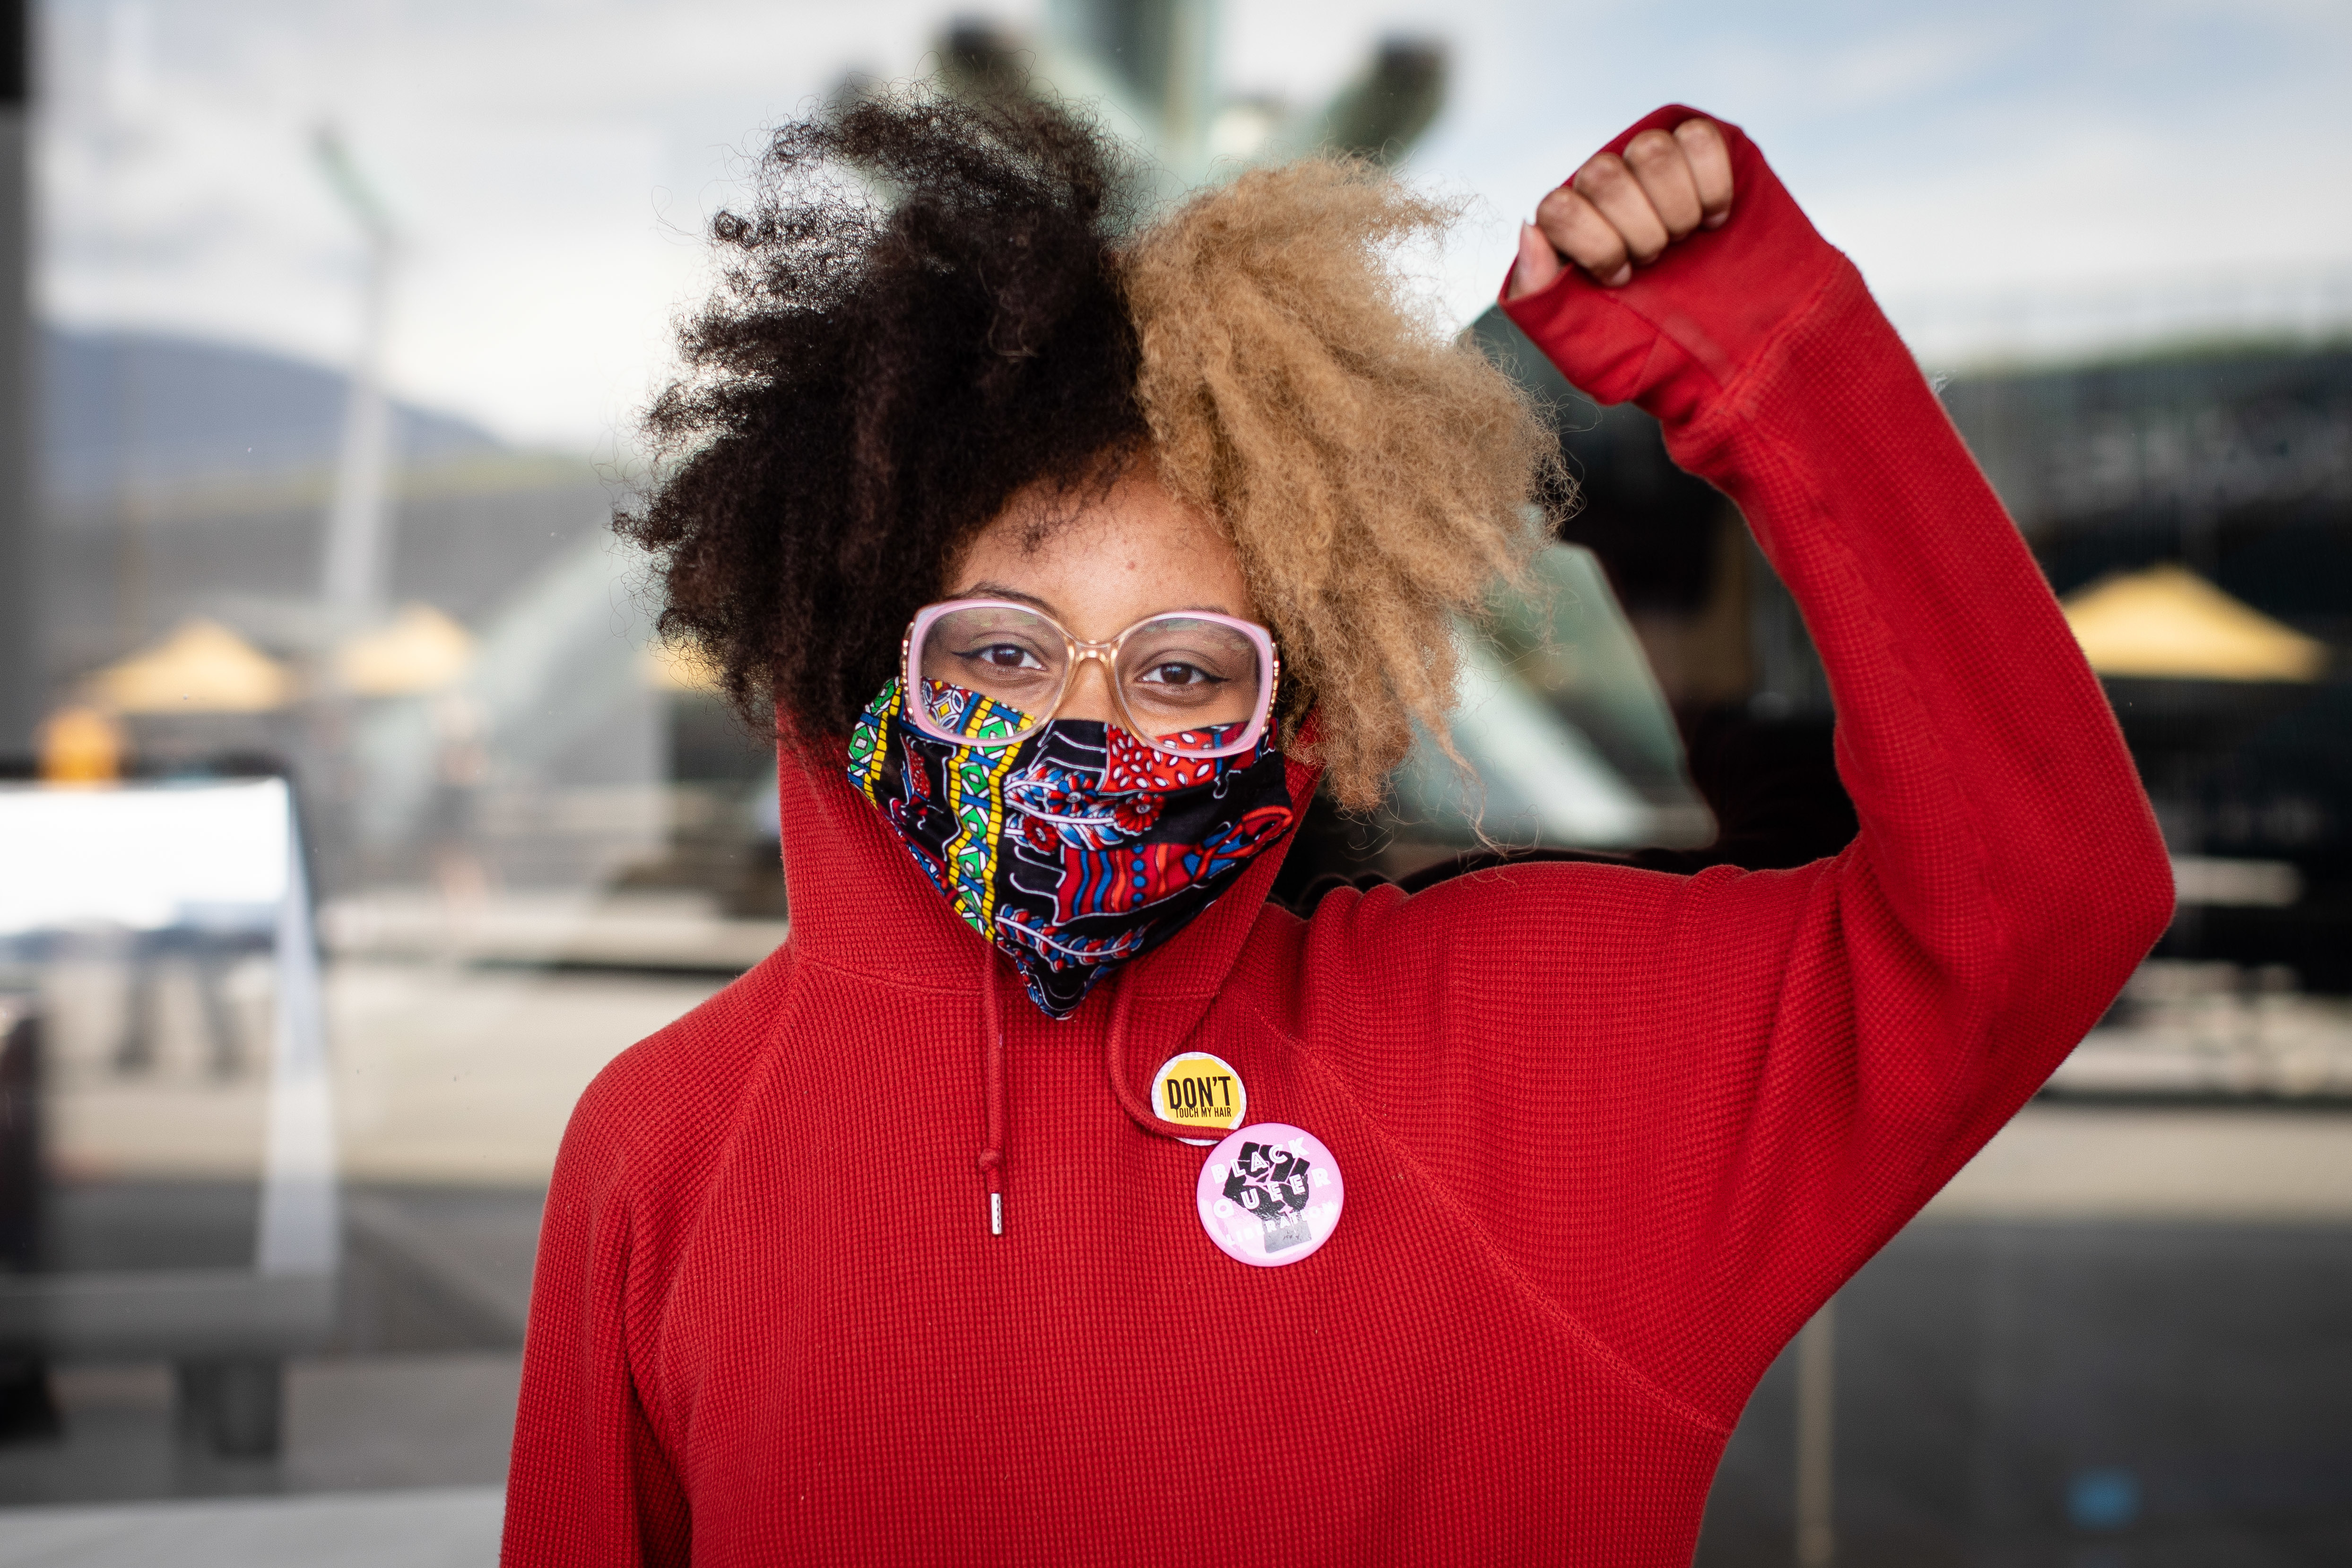 """""""I'm here today to uplift all the black voices that have been lost to police brutality and racism in both Canada and America. We have a problem here too, as well as we do in the States, which is very apparent, and it's time the world sees how much black people are strong and confident and beautiful and worth it, and are worth fighting for."""" - Feven Kidane, 22, protest organizer"""